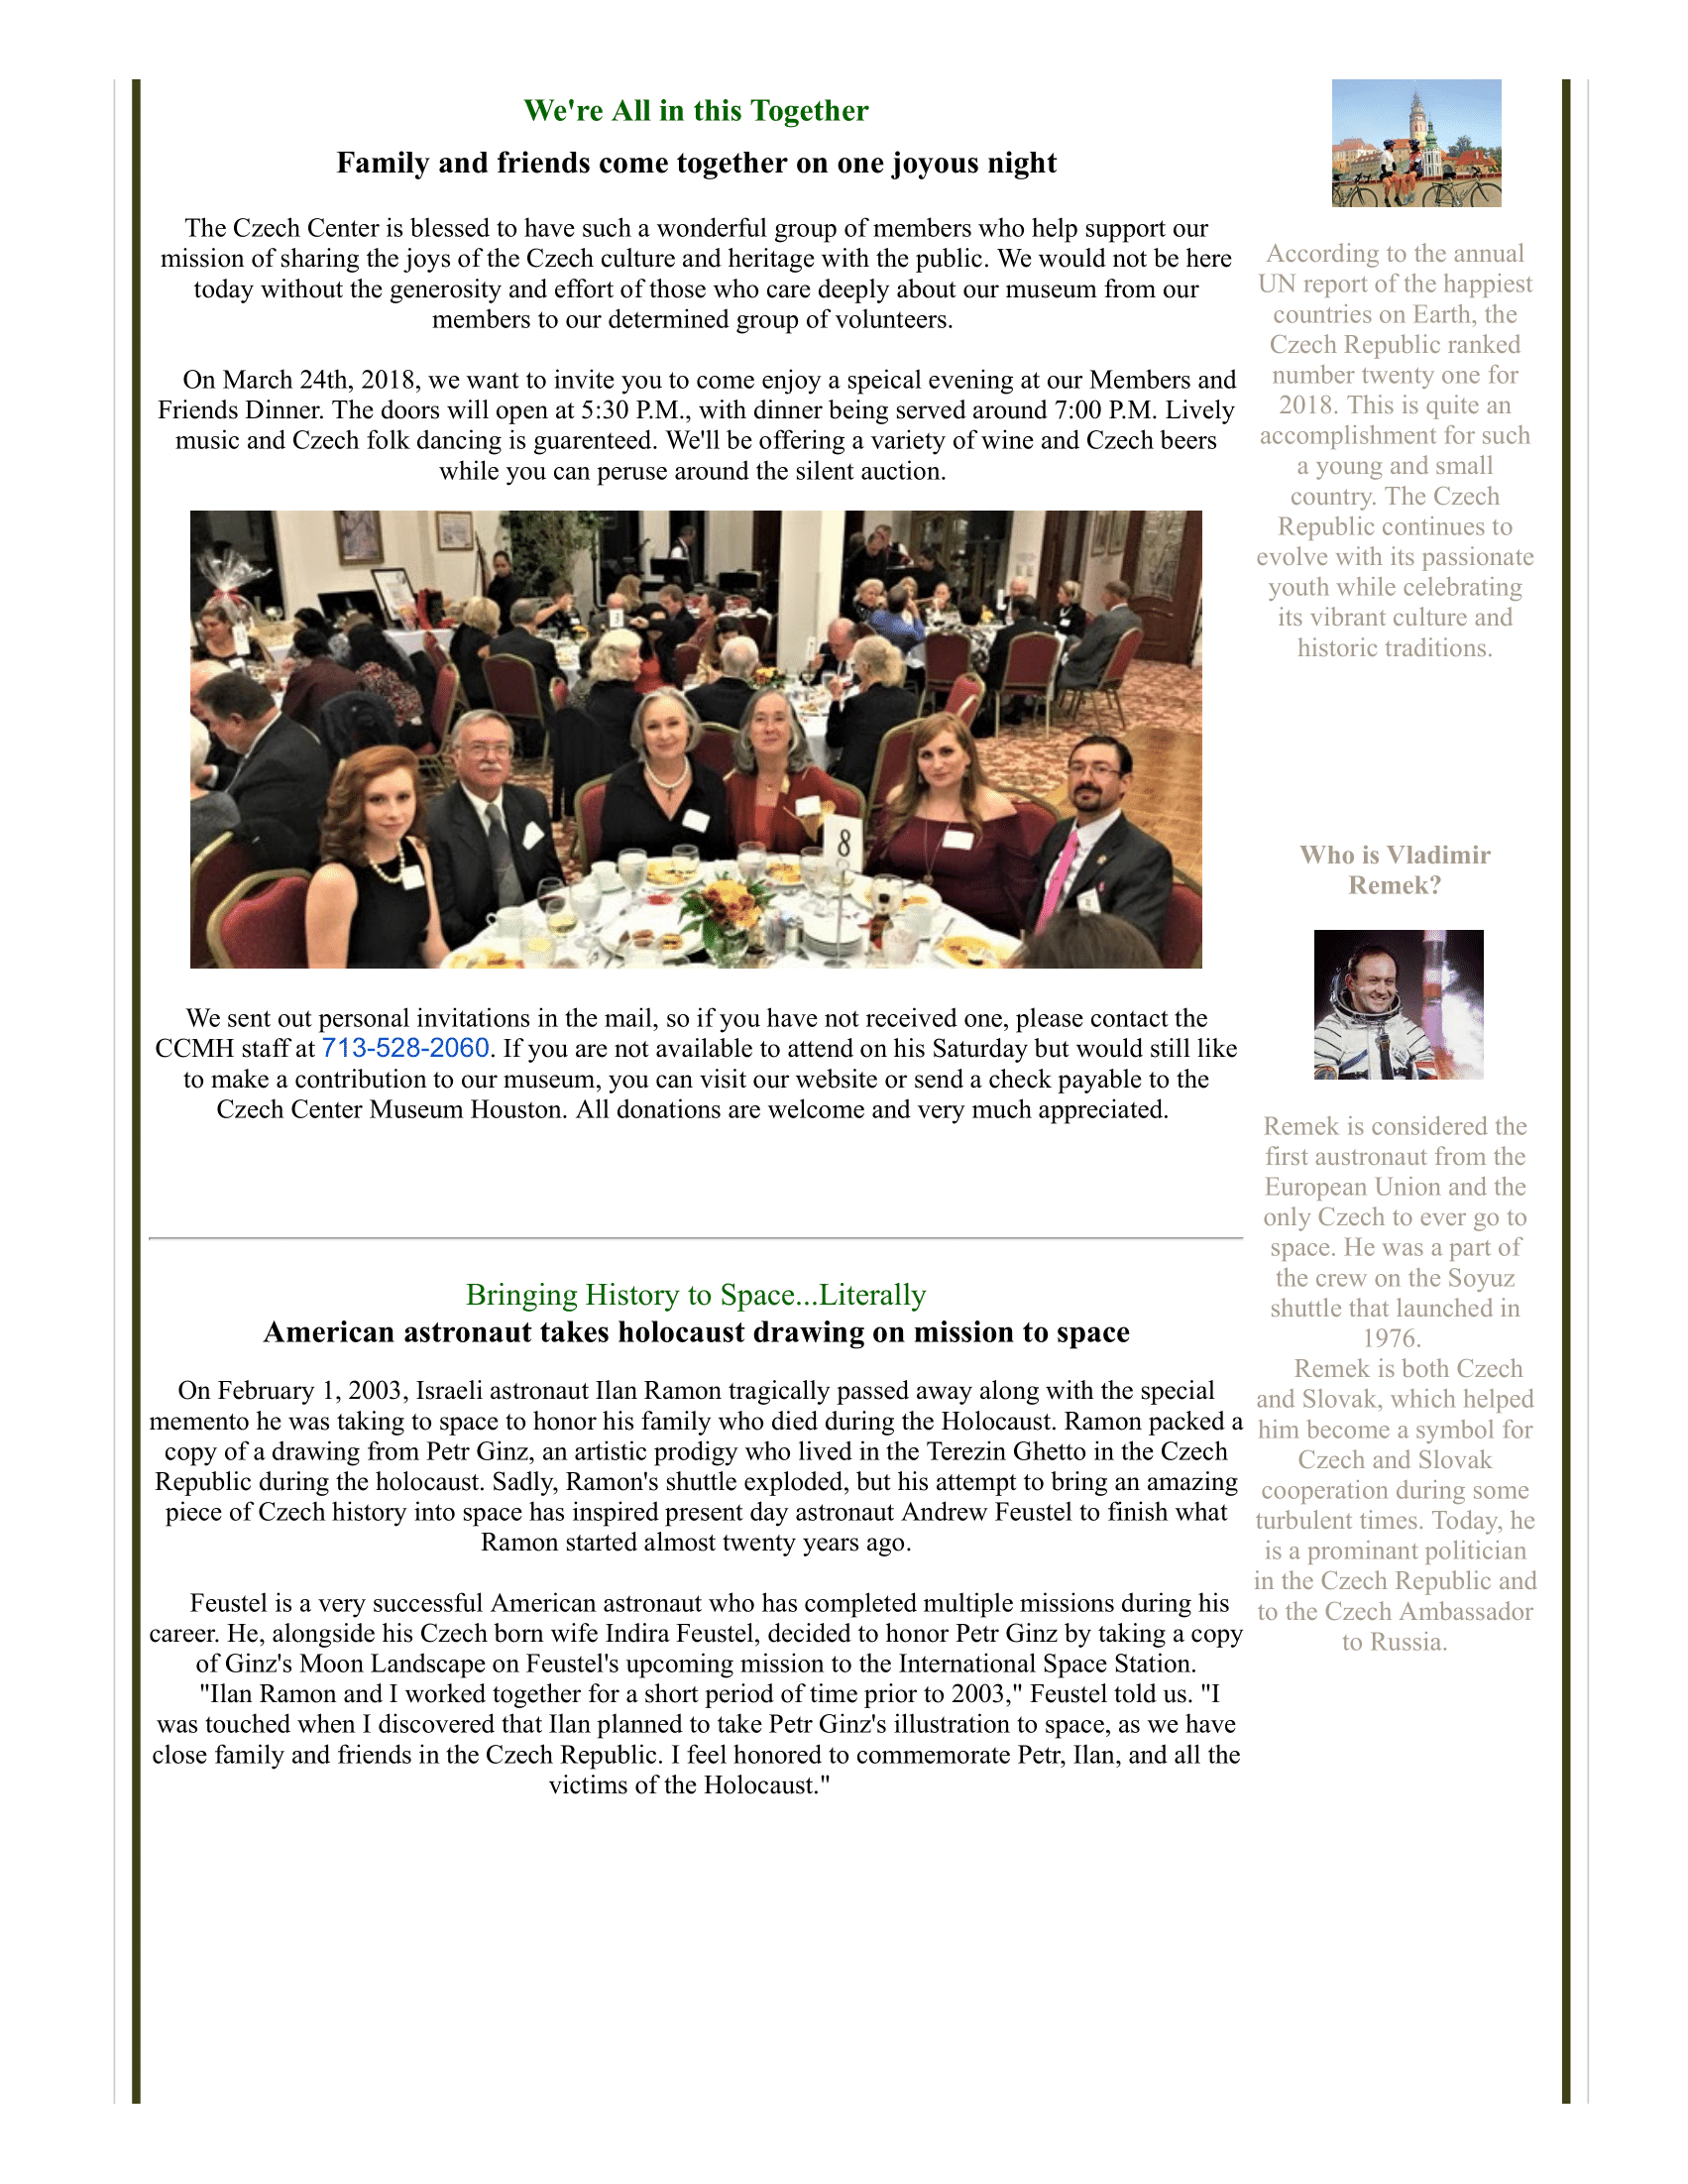 Czech Center Museum Houston Mail - March 2018 CCMH Newsletter-2.png